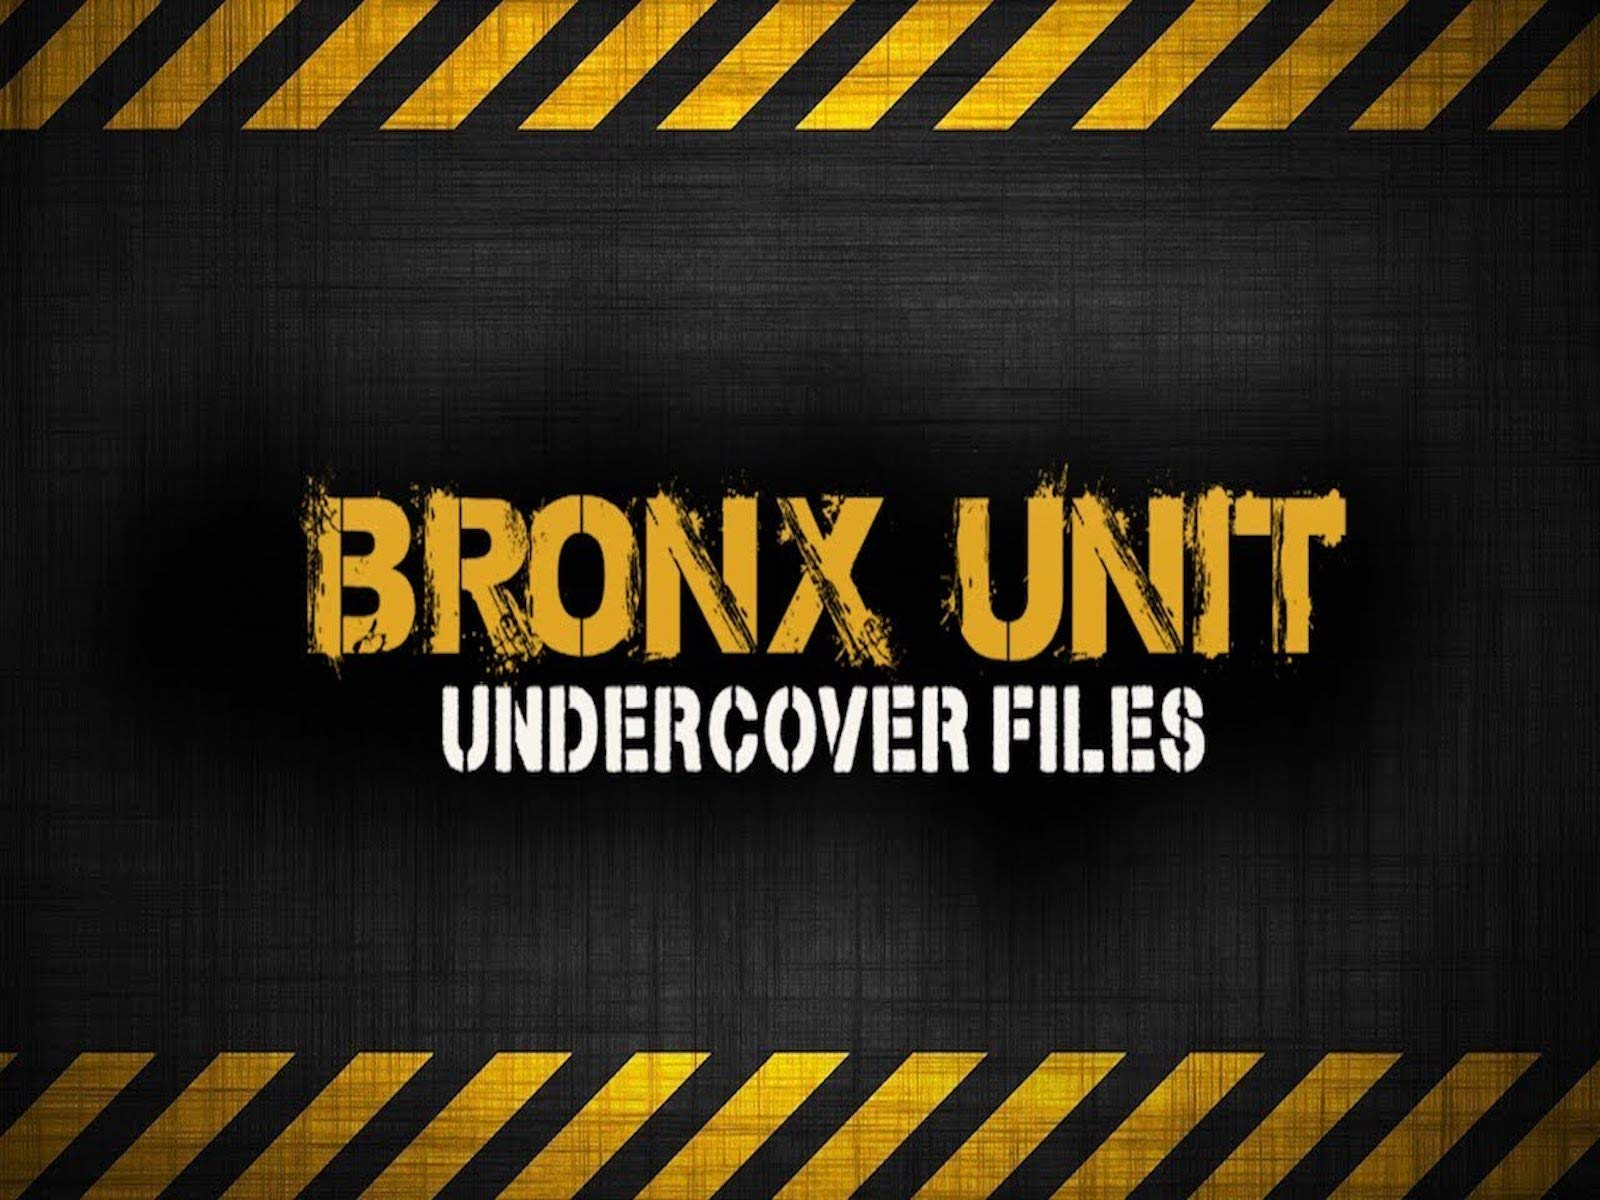 Bronx Unit Undercover Files